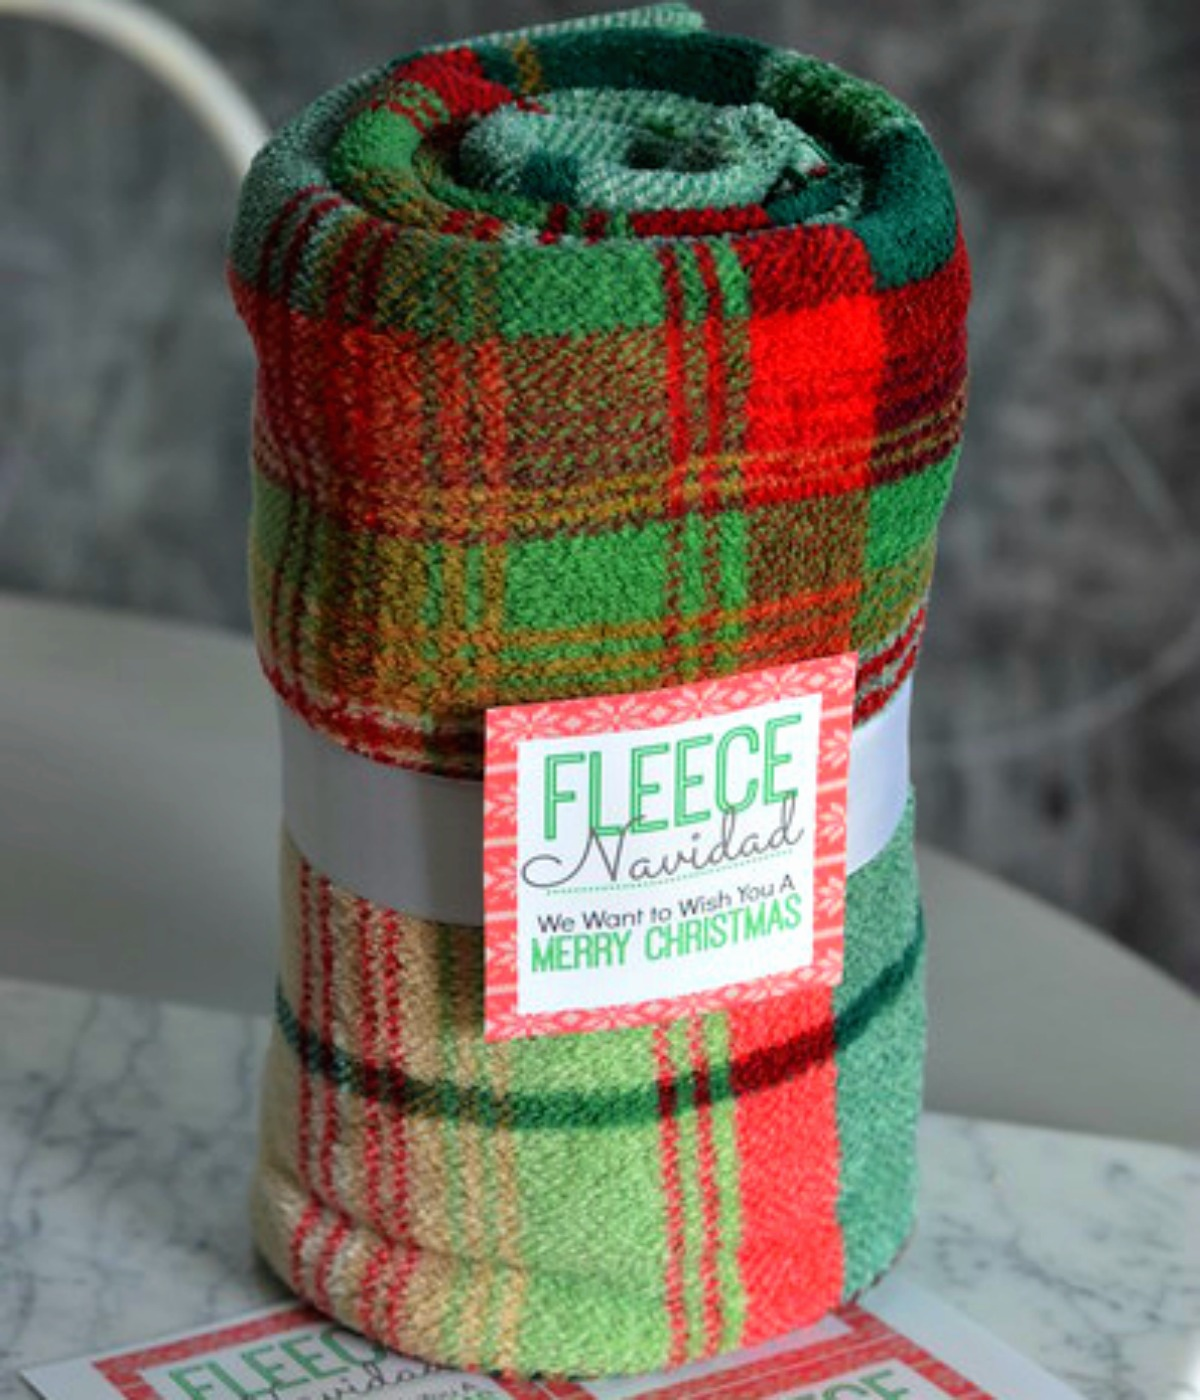 blanket with gift tag